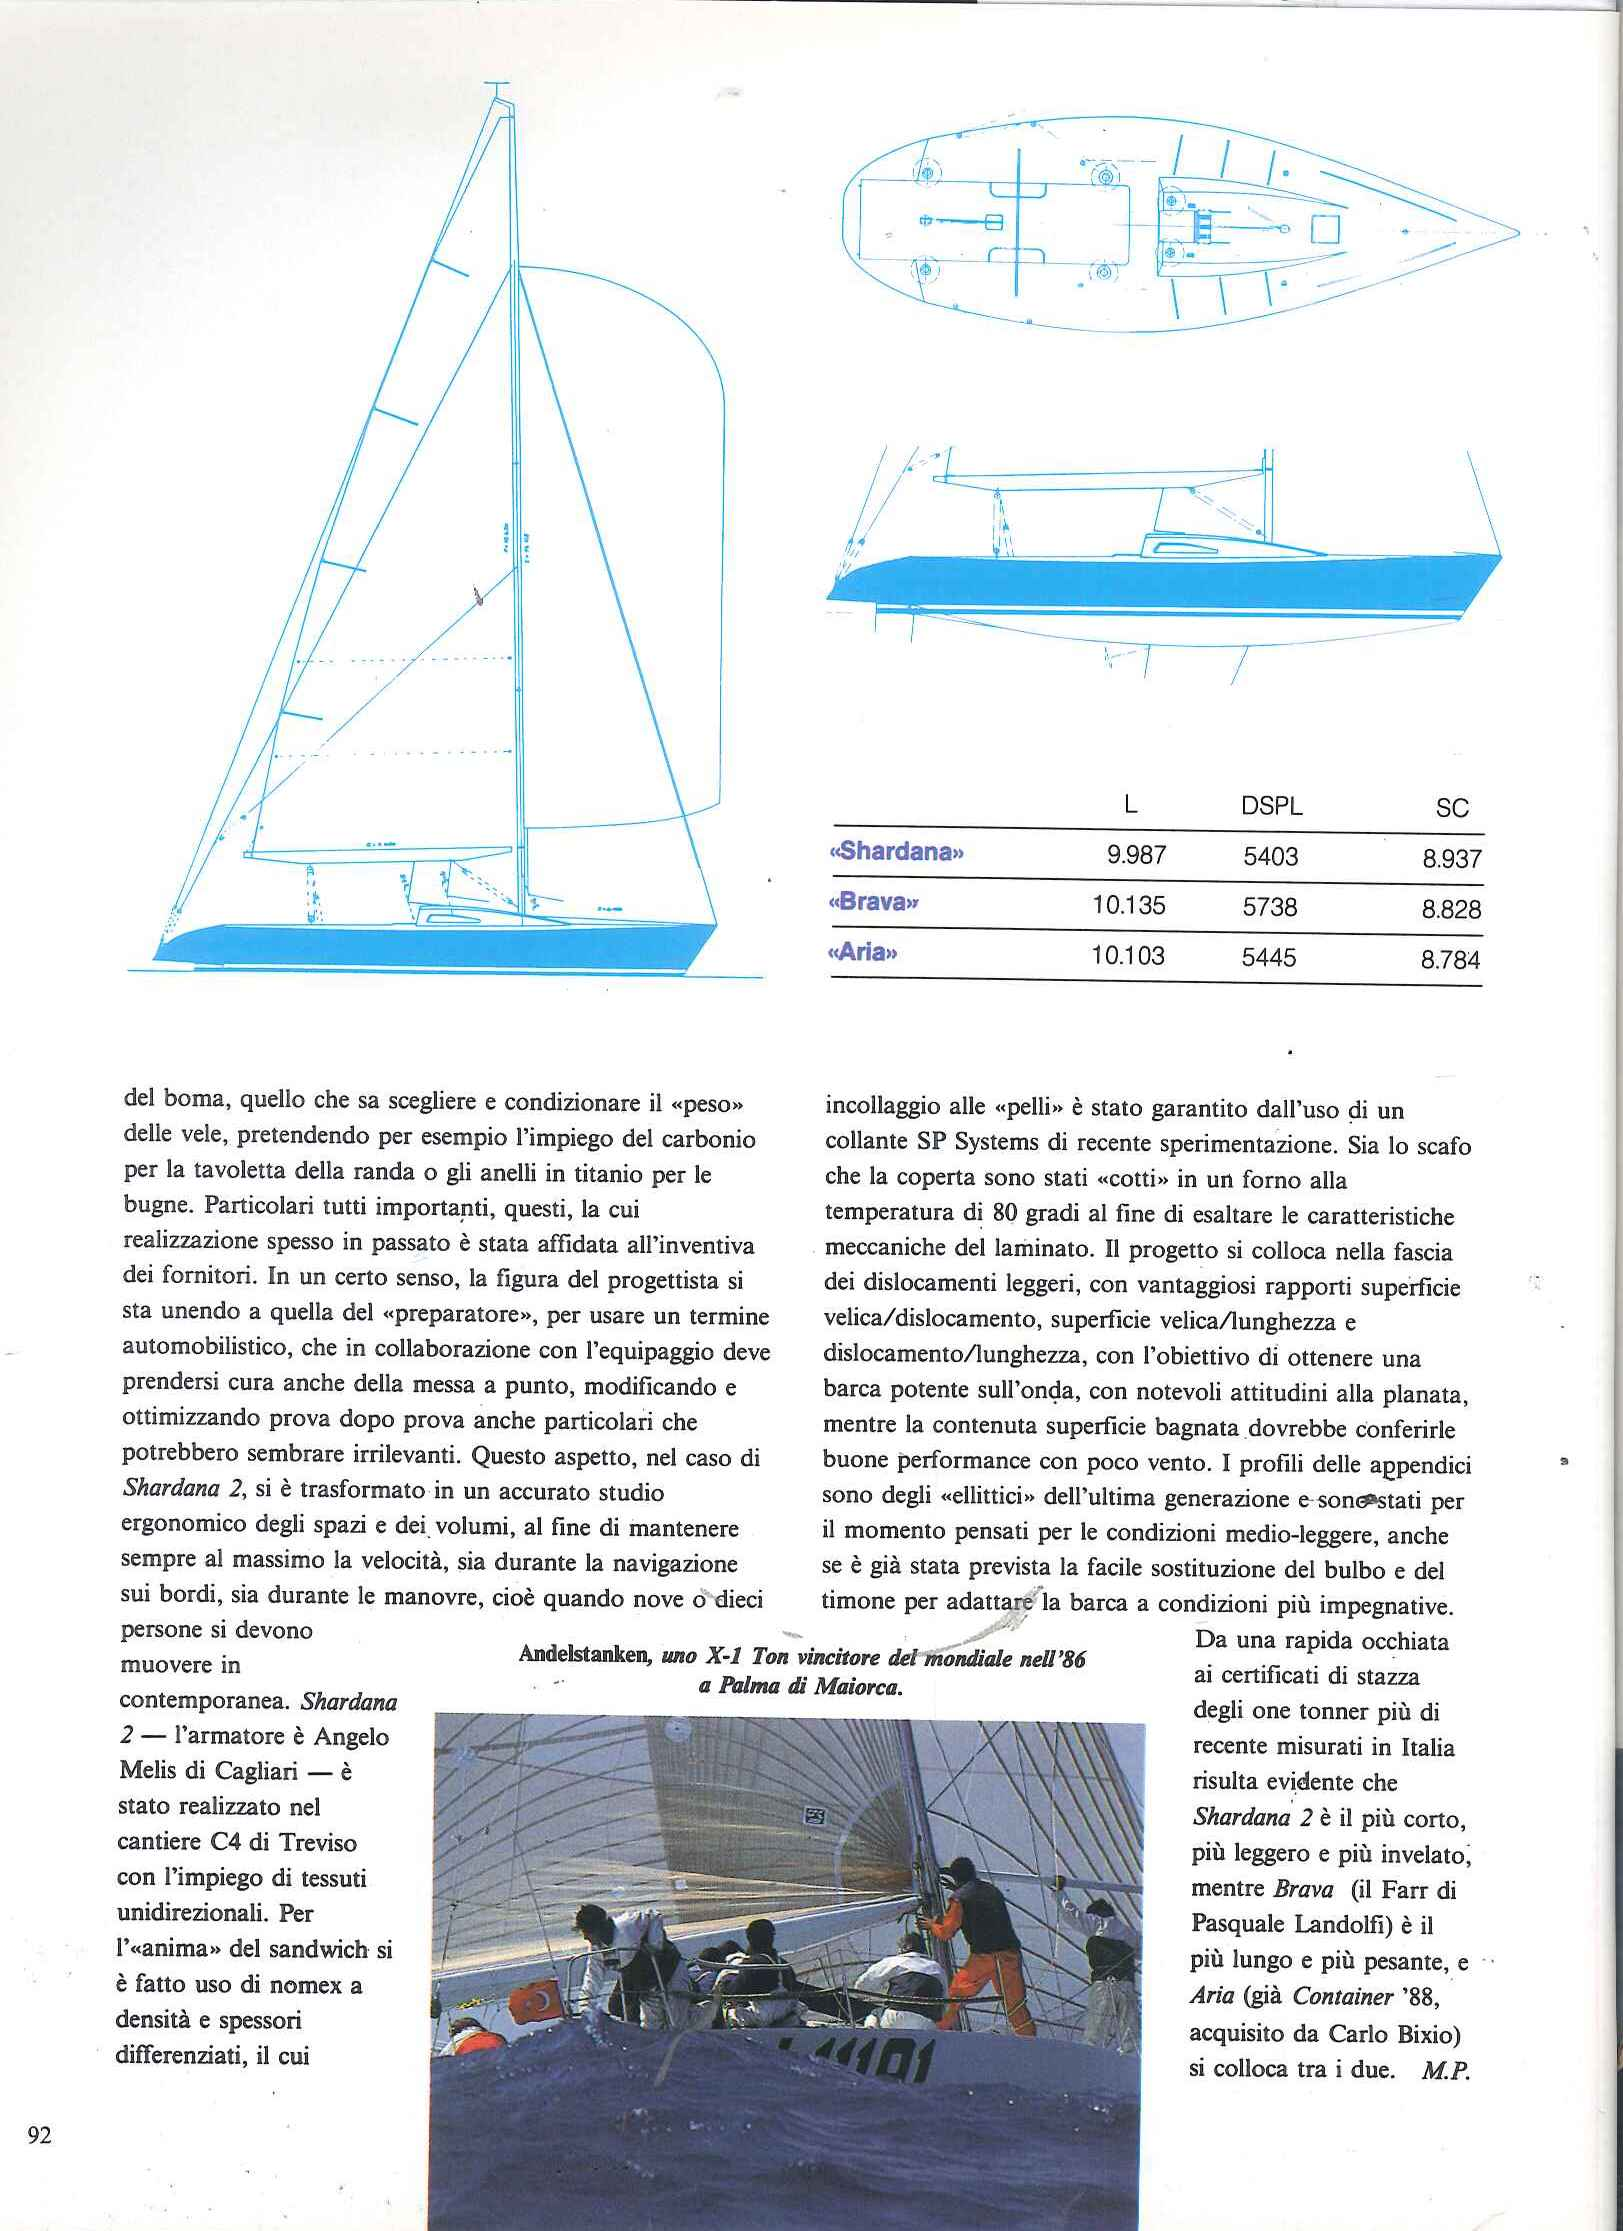 1989 04 PRESS ONE TON CUP UOMO MARE 129 (07).jpg